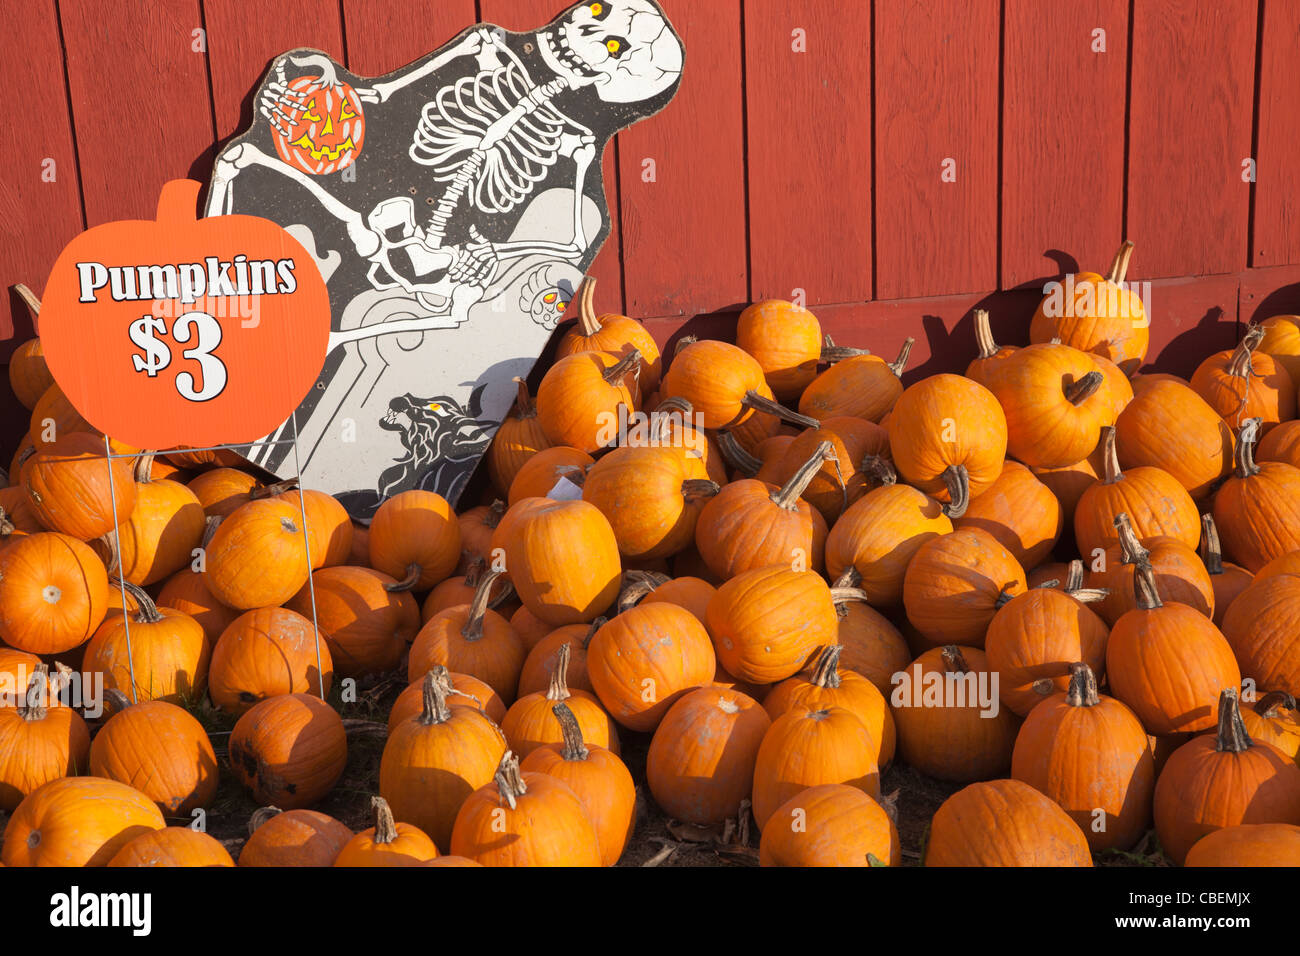 Pumpkins for sale at a farm in autumn. - Stock Image